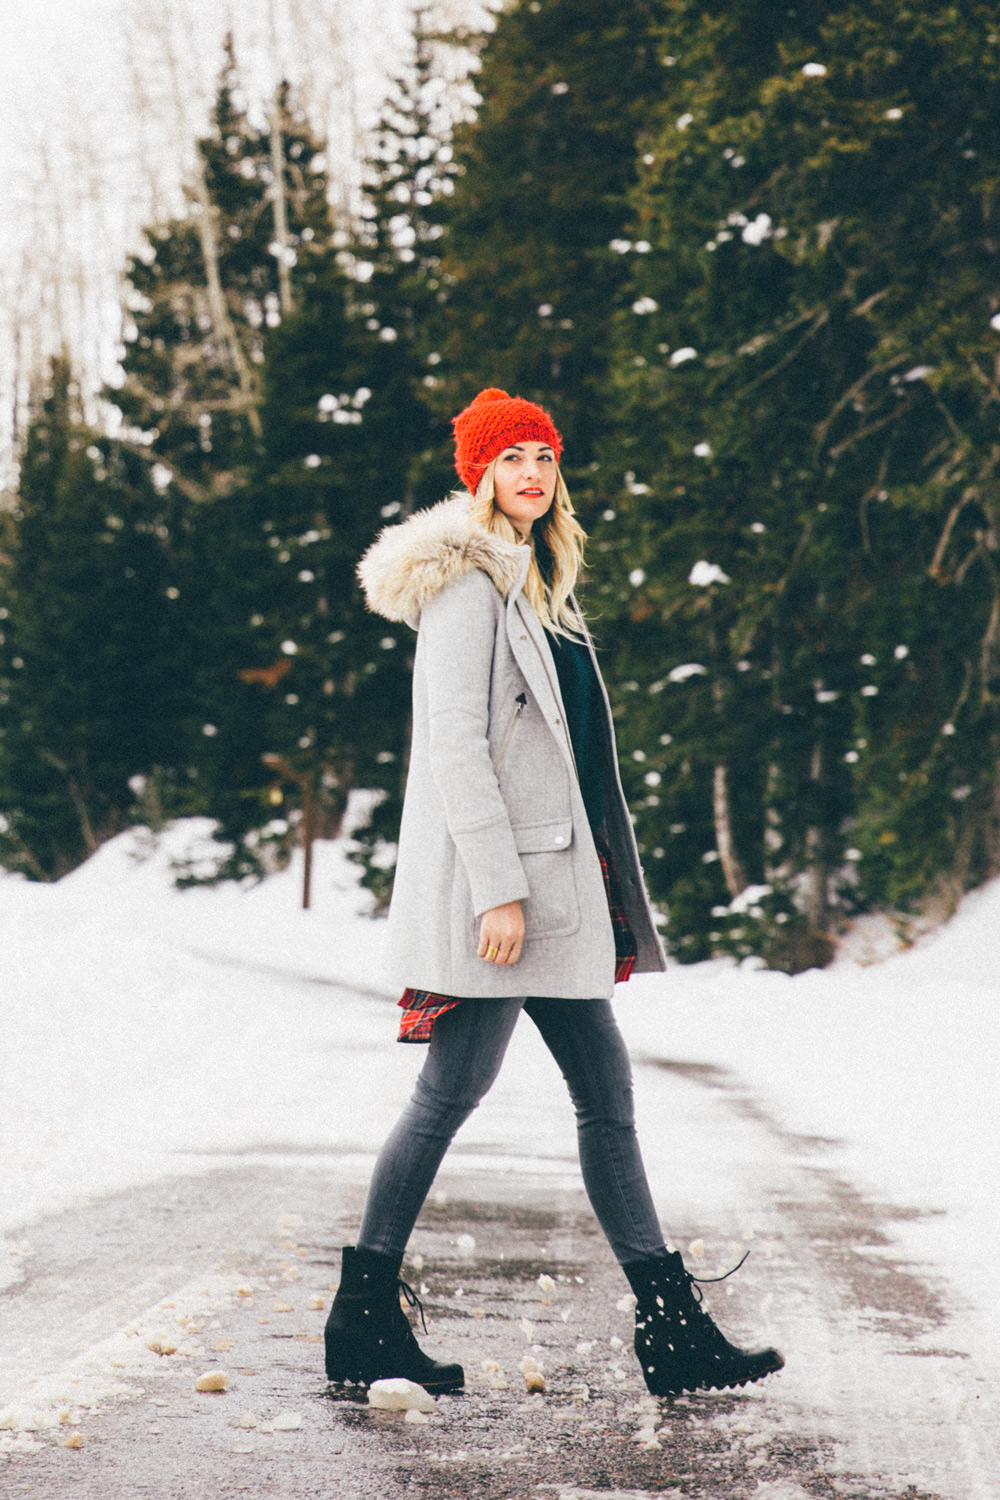 Dash of Darling wears a winter outfit in the snow while visiting home in Park City, Utah